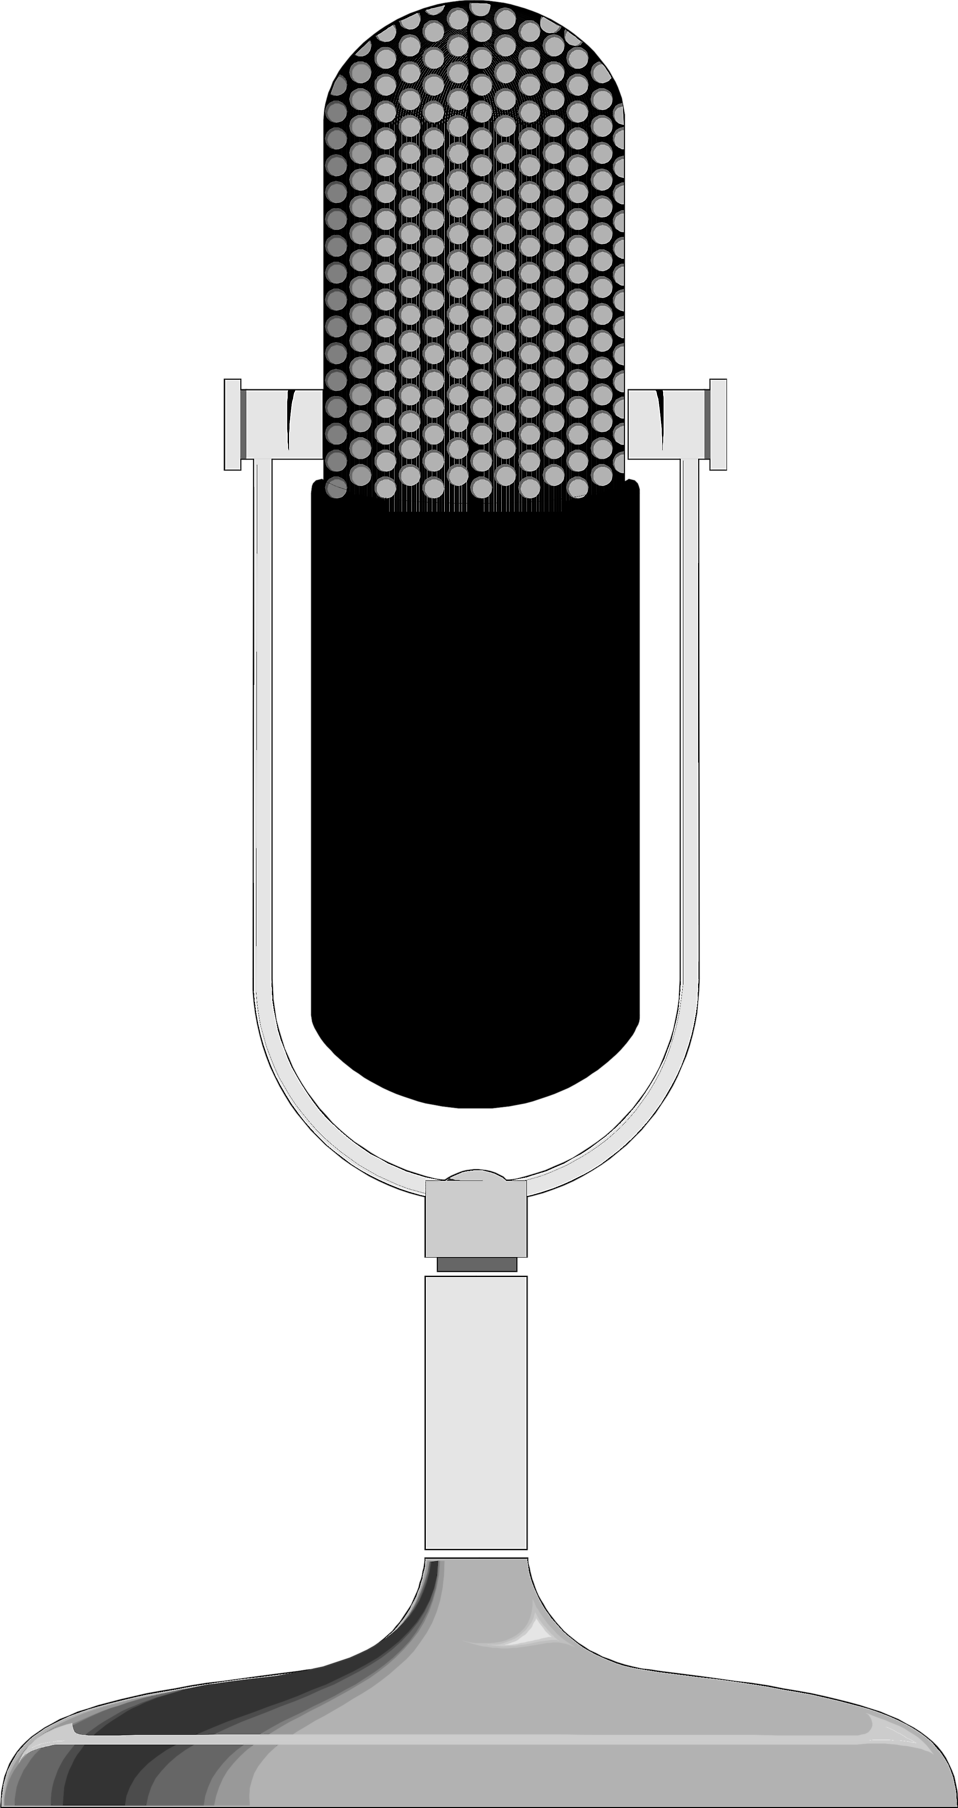 Microphone clipart stage microphone. Free stock photo illustration